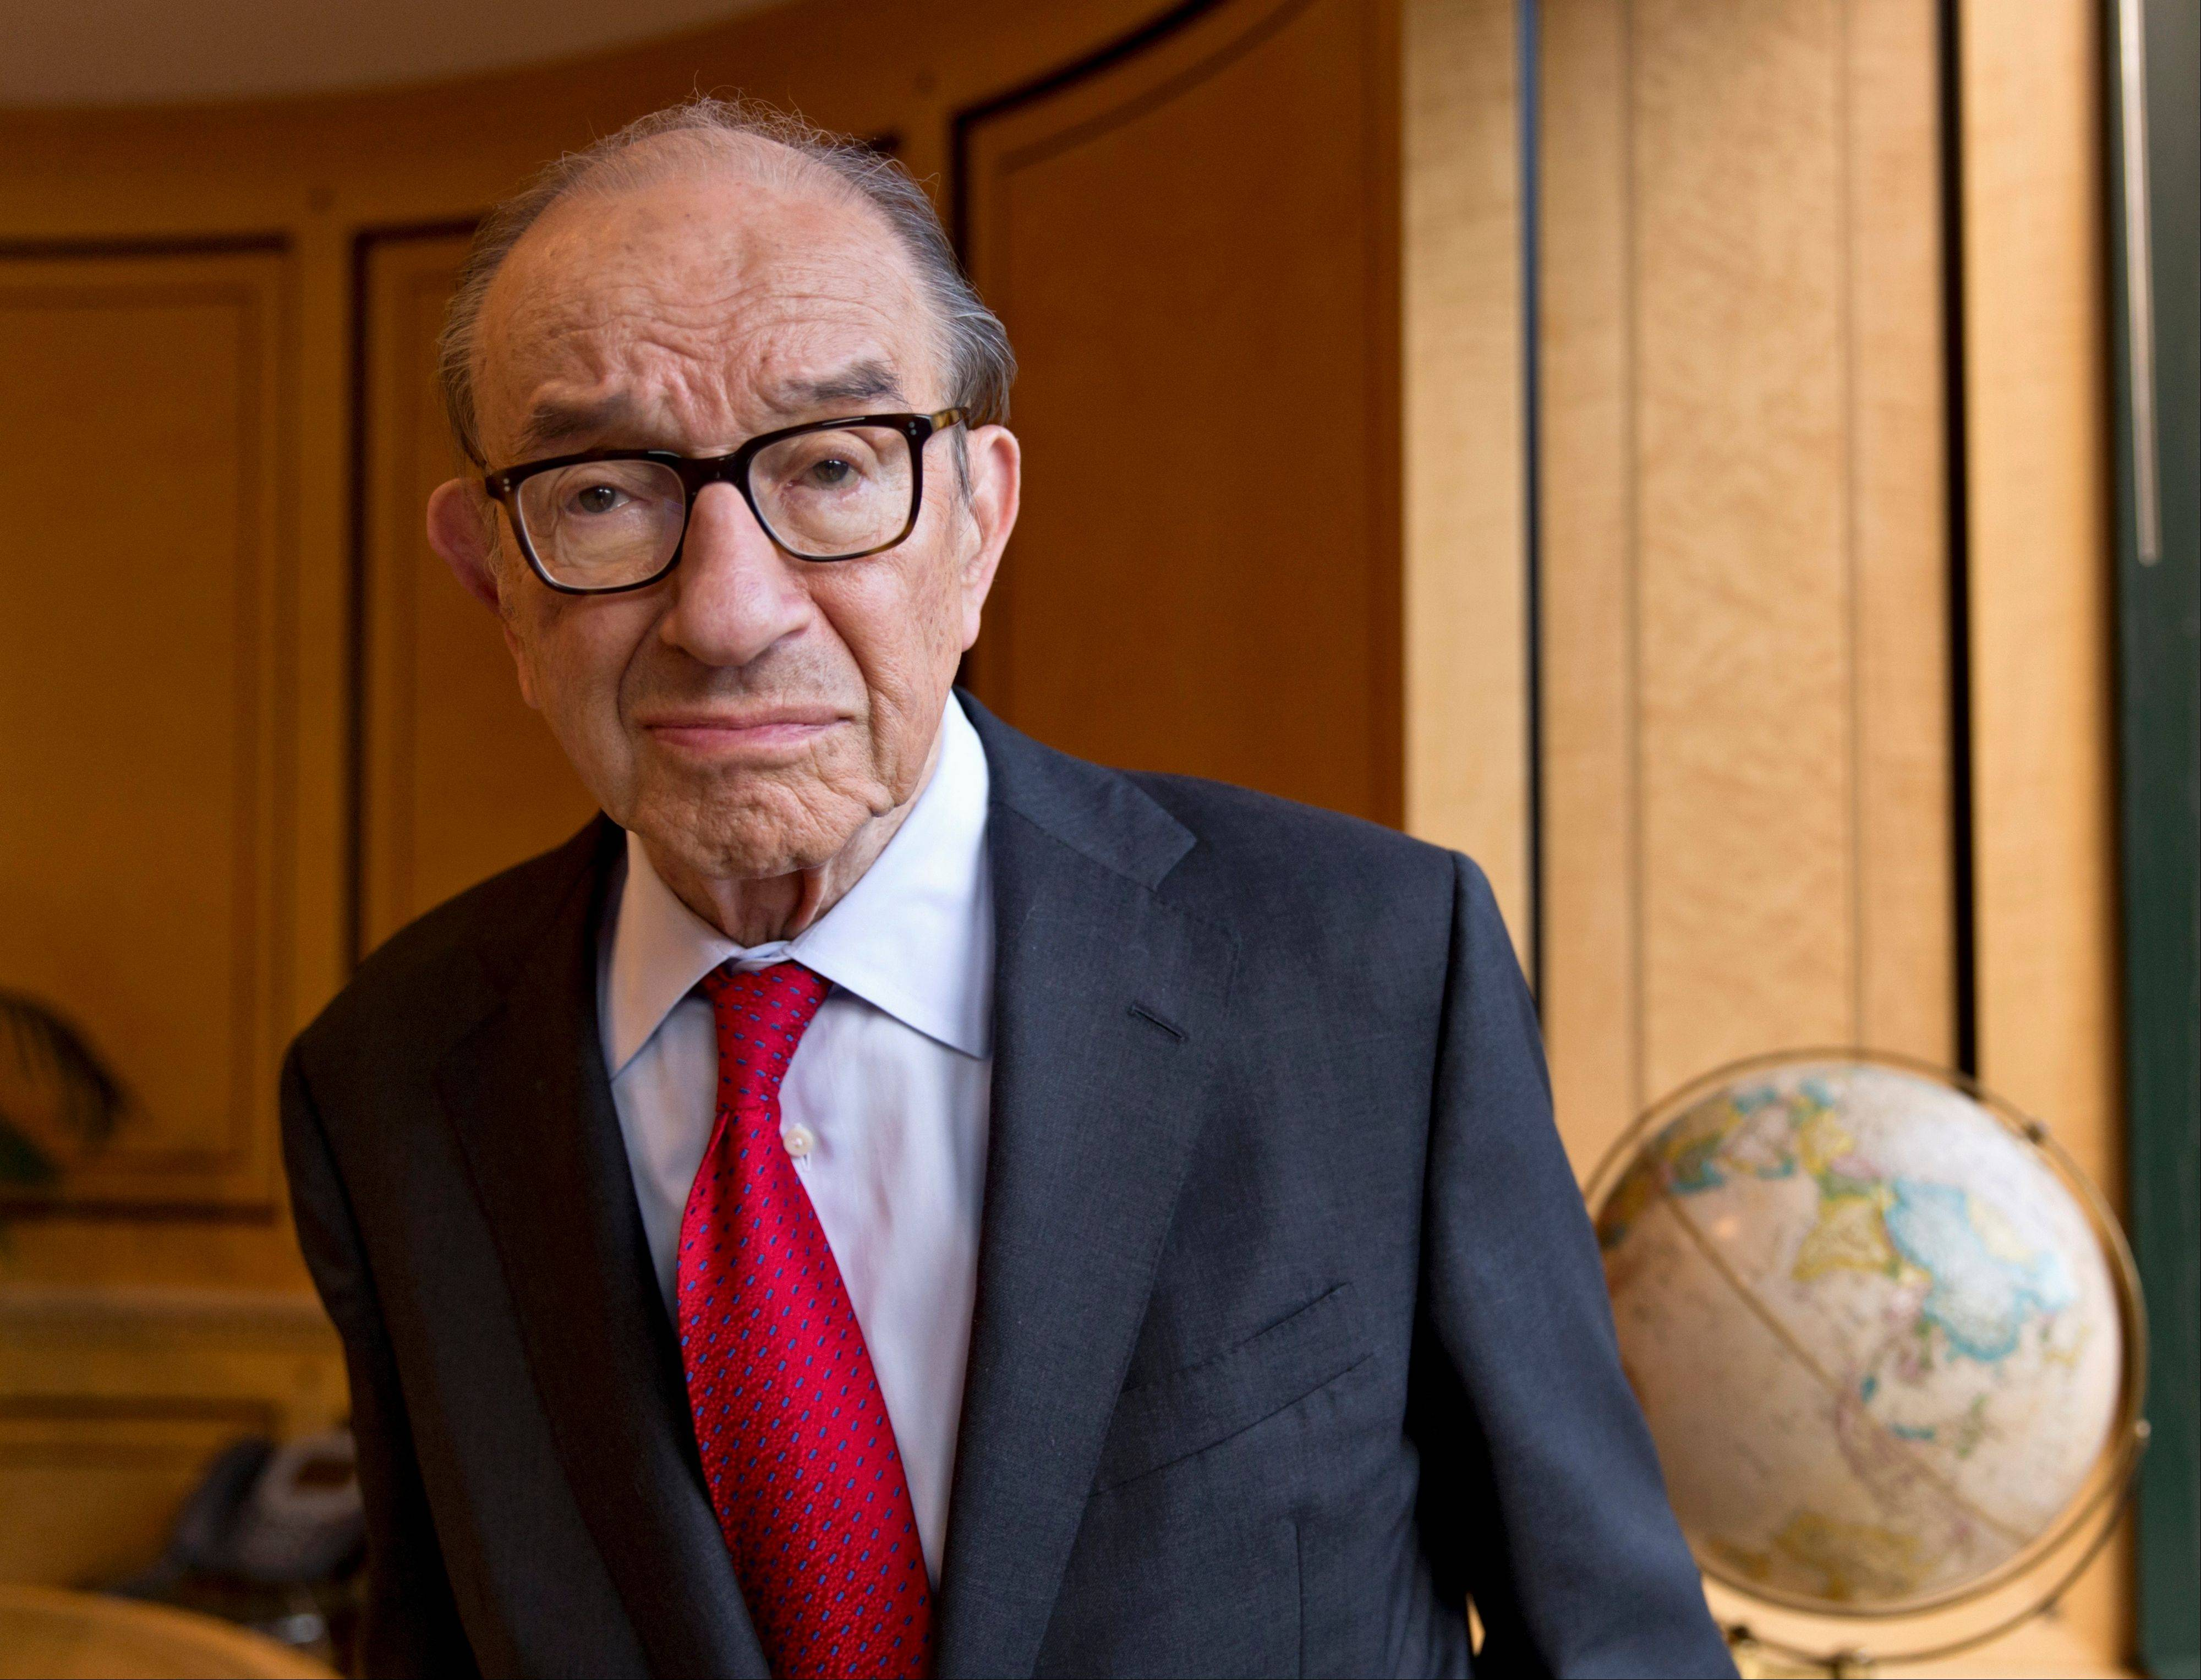 Alan Greenspan has struck back at any notion that he -- or anyone -- could have known how or when to defuse the threats that triggered the financial crisis that led to the Great Recession. Now 87, he work as a private consultant.